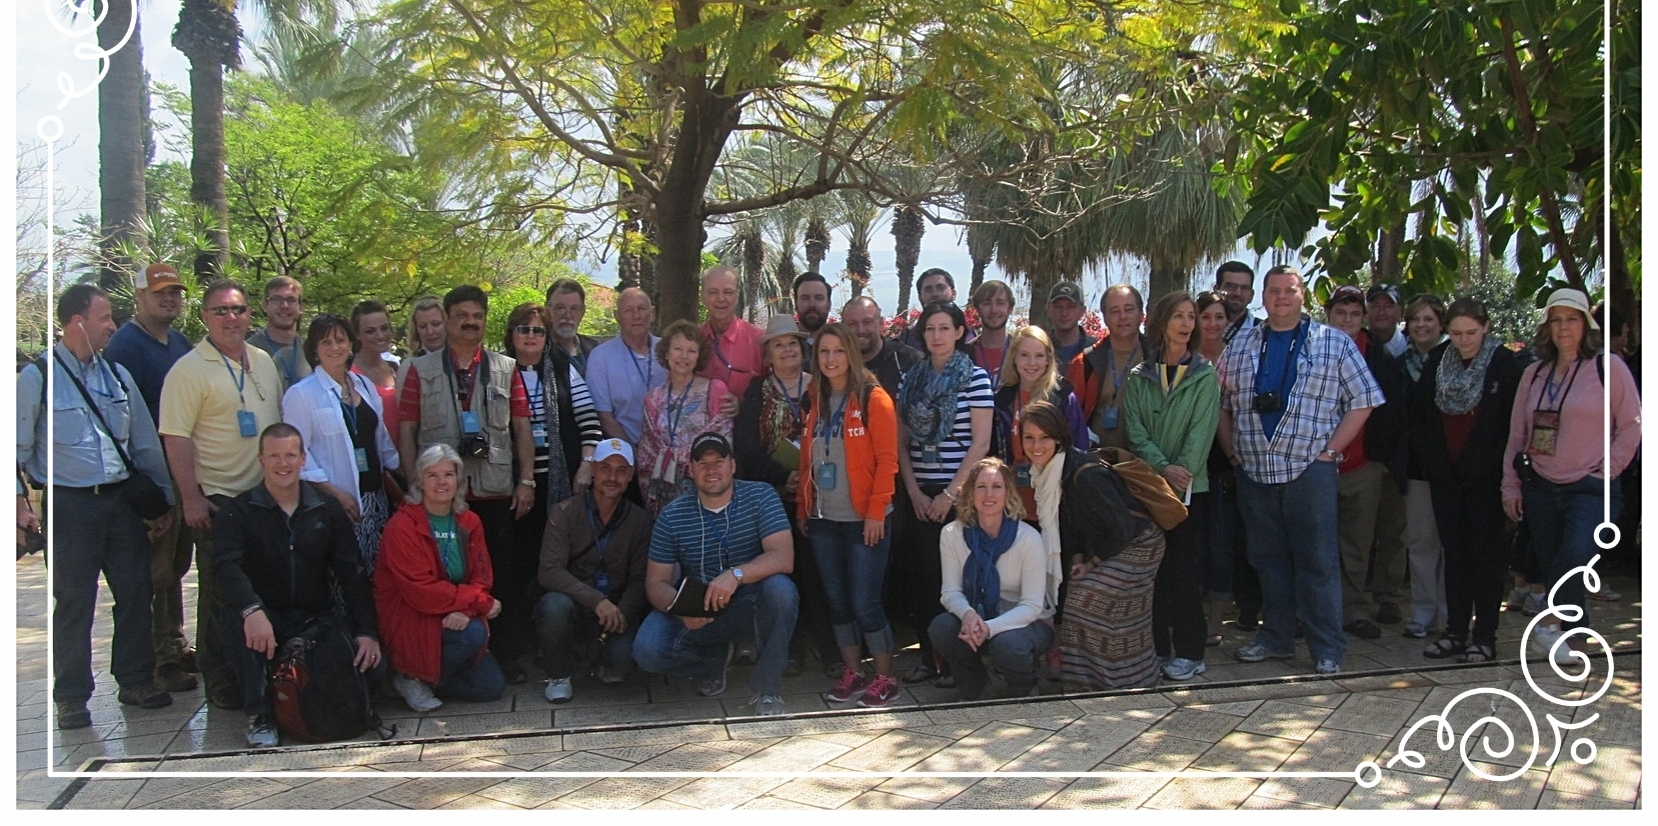 US New Spring Church group in Galilee